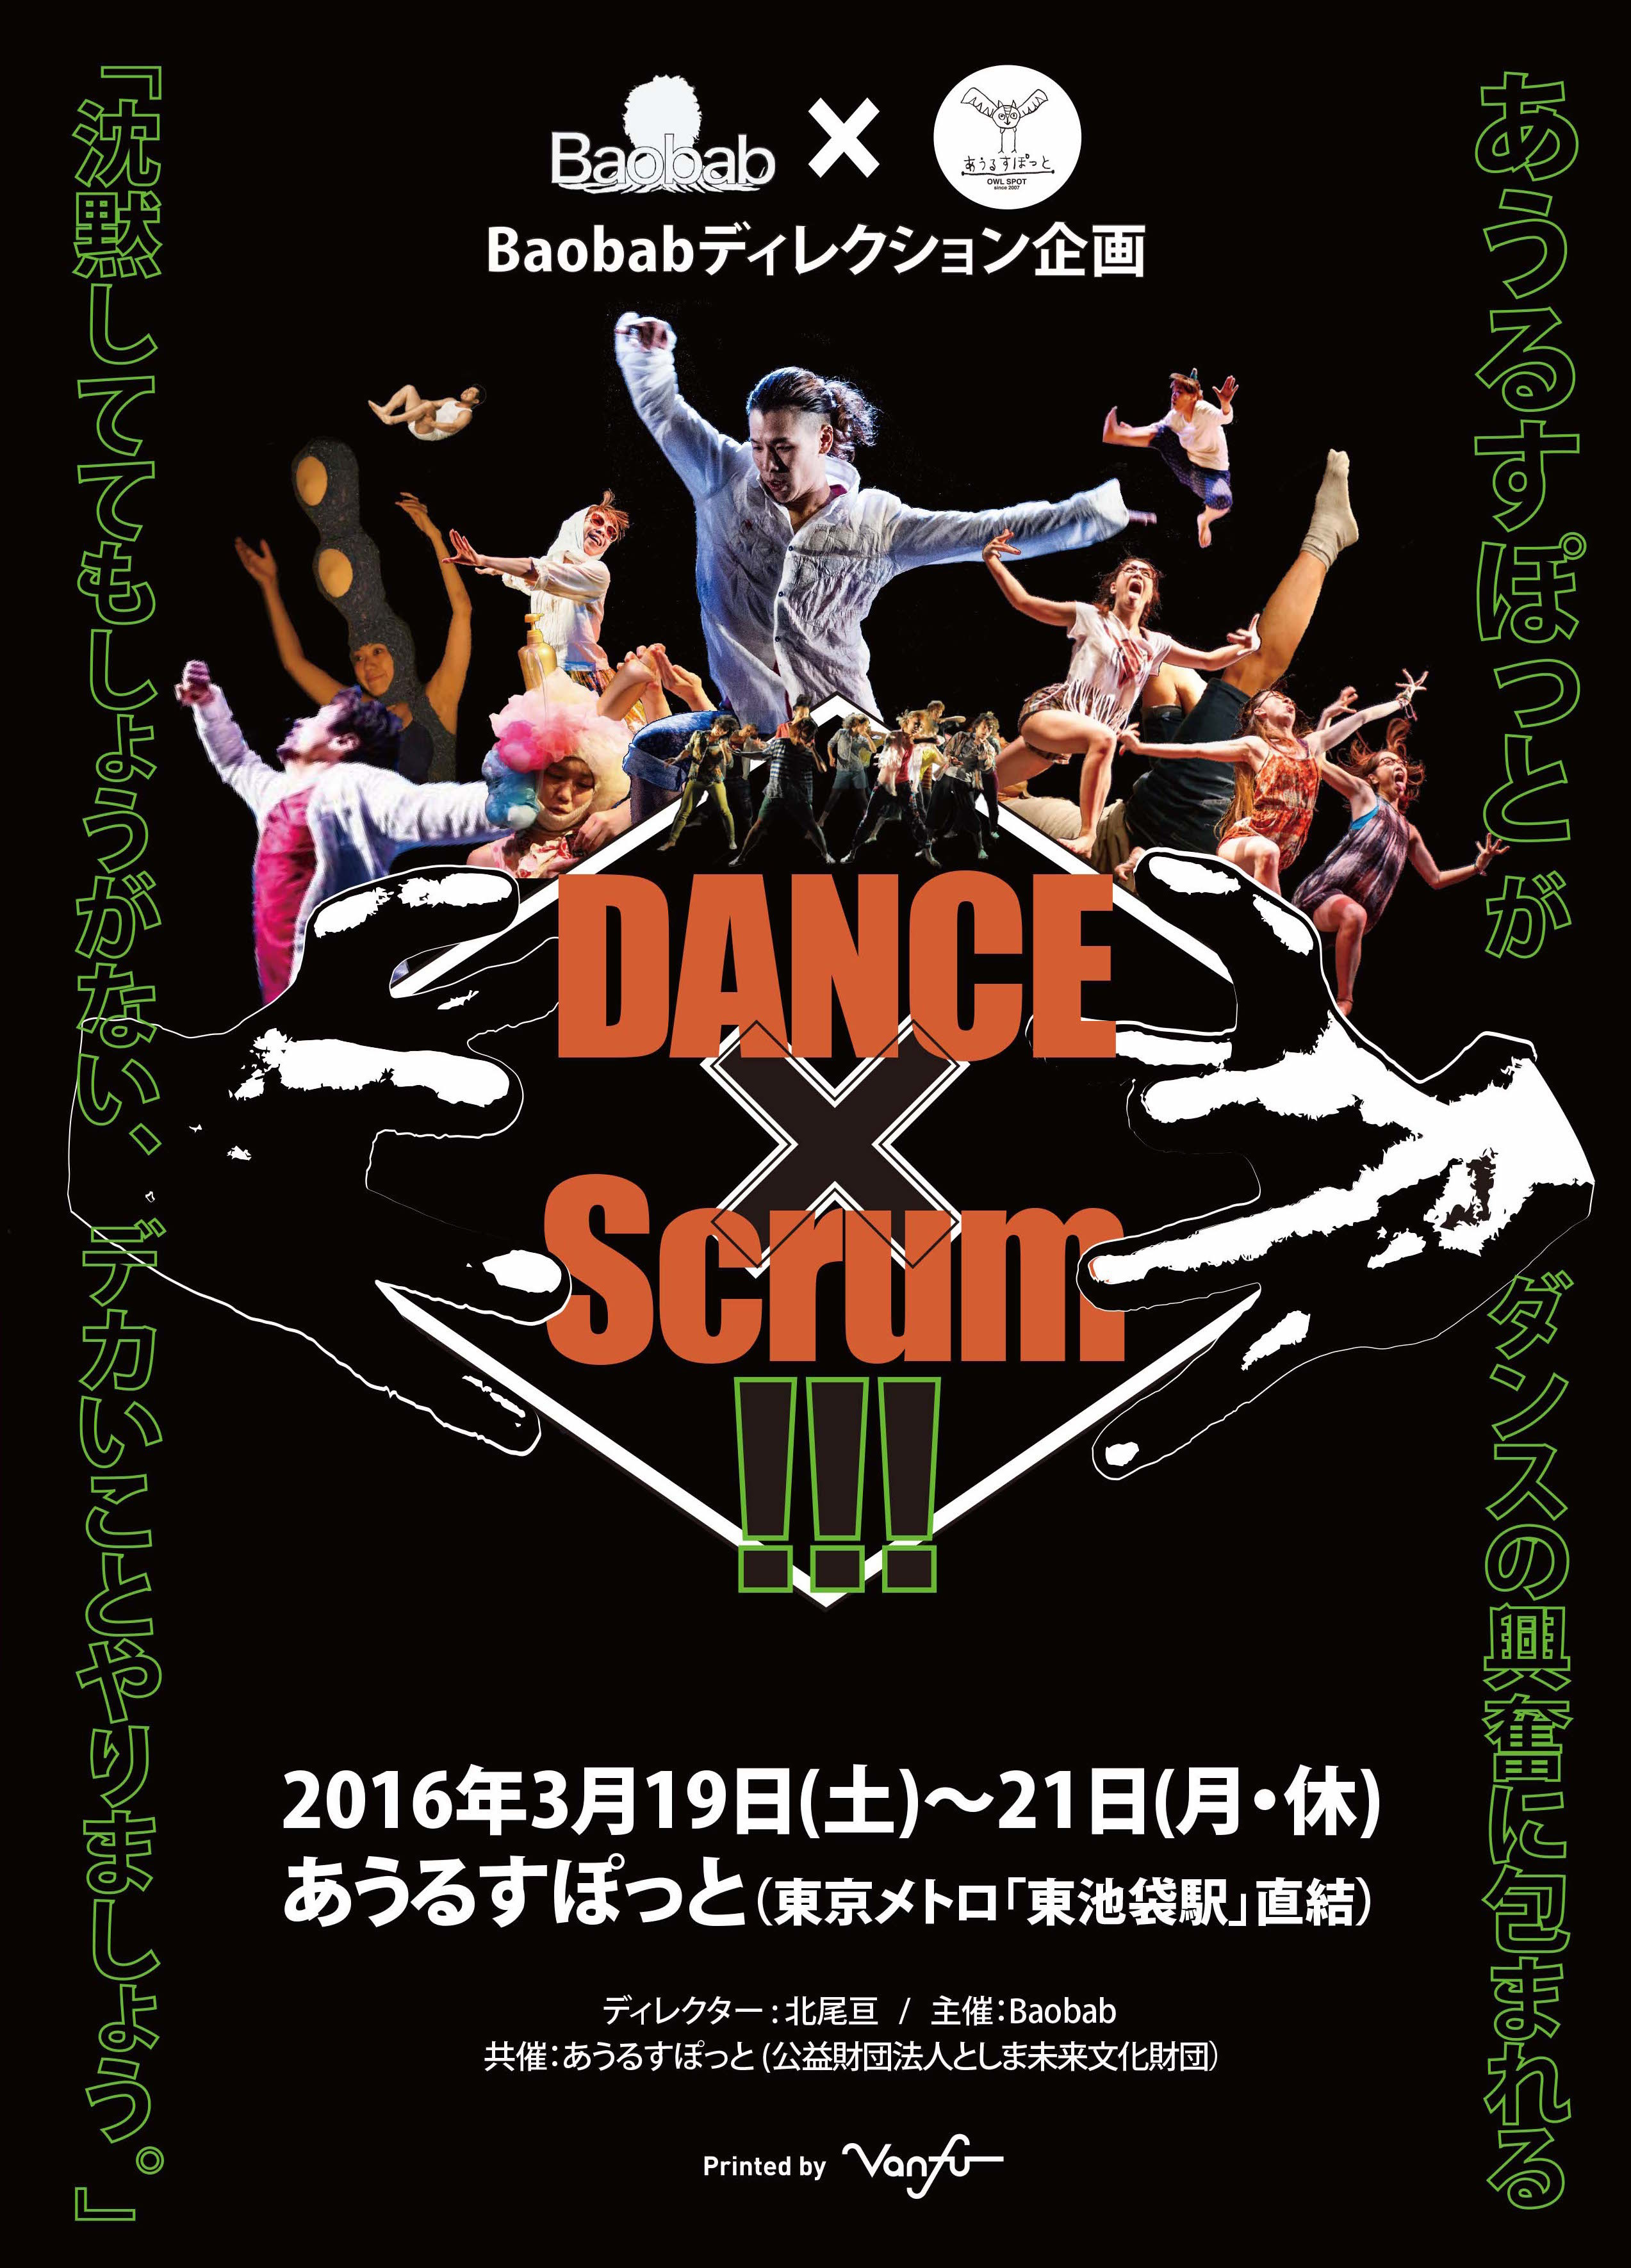 Baobab『DANCE×Scrum!!!』